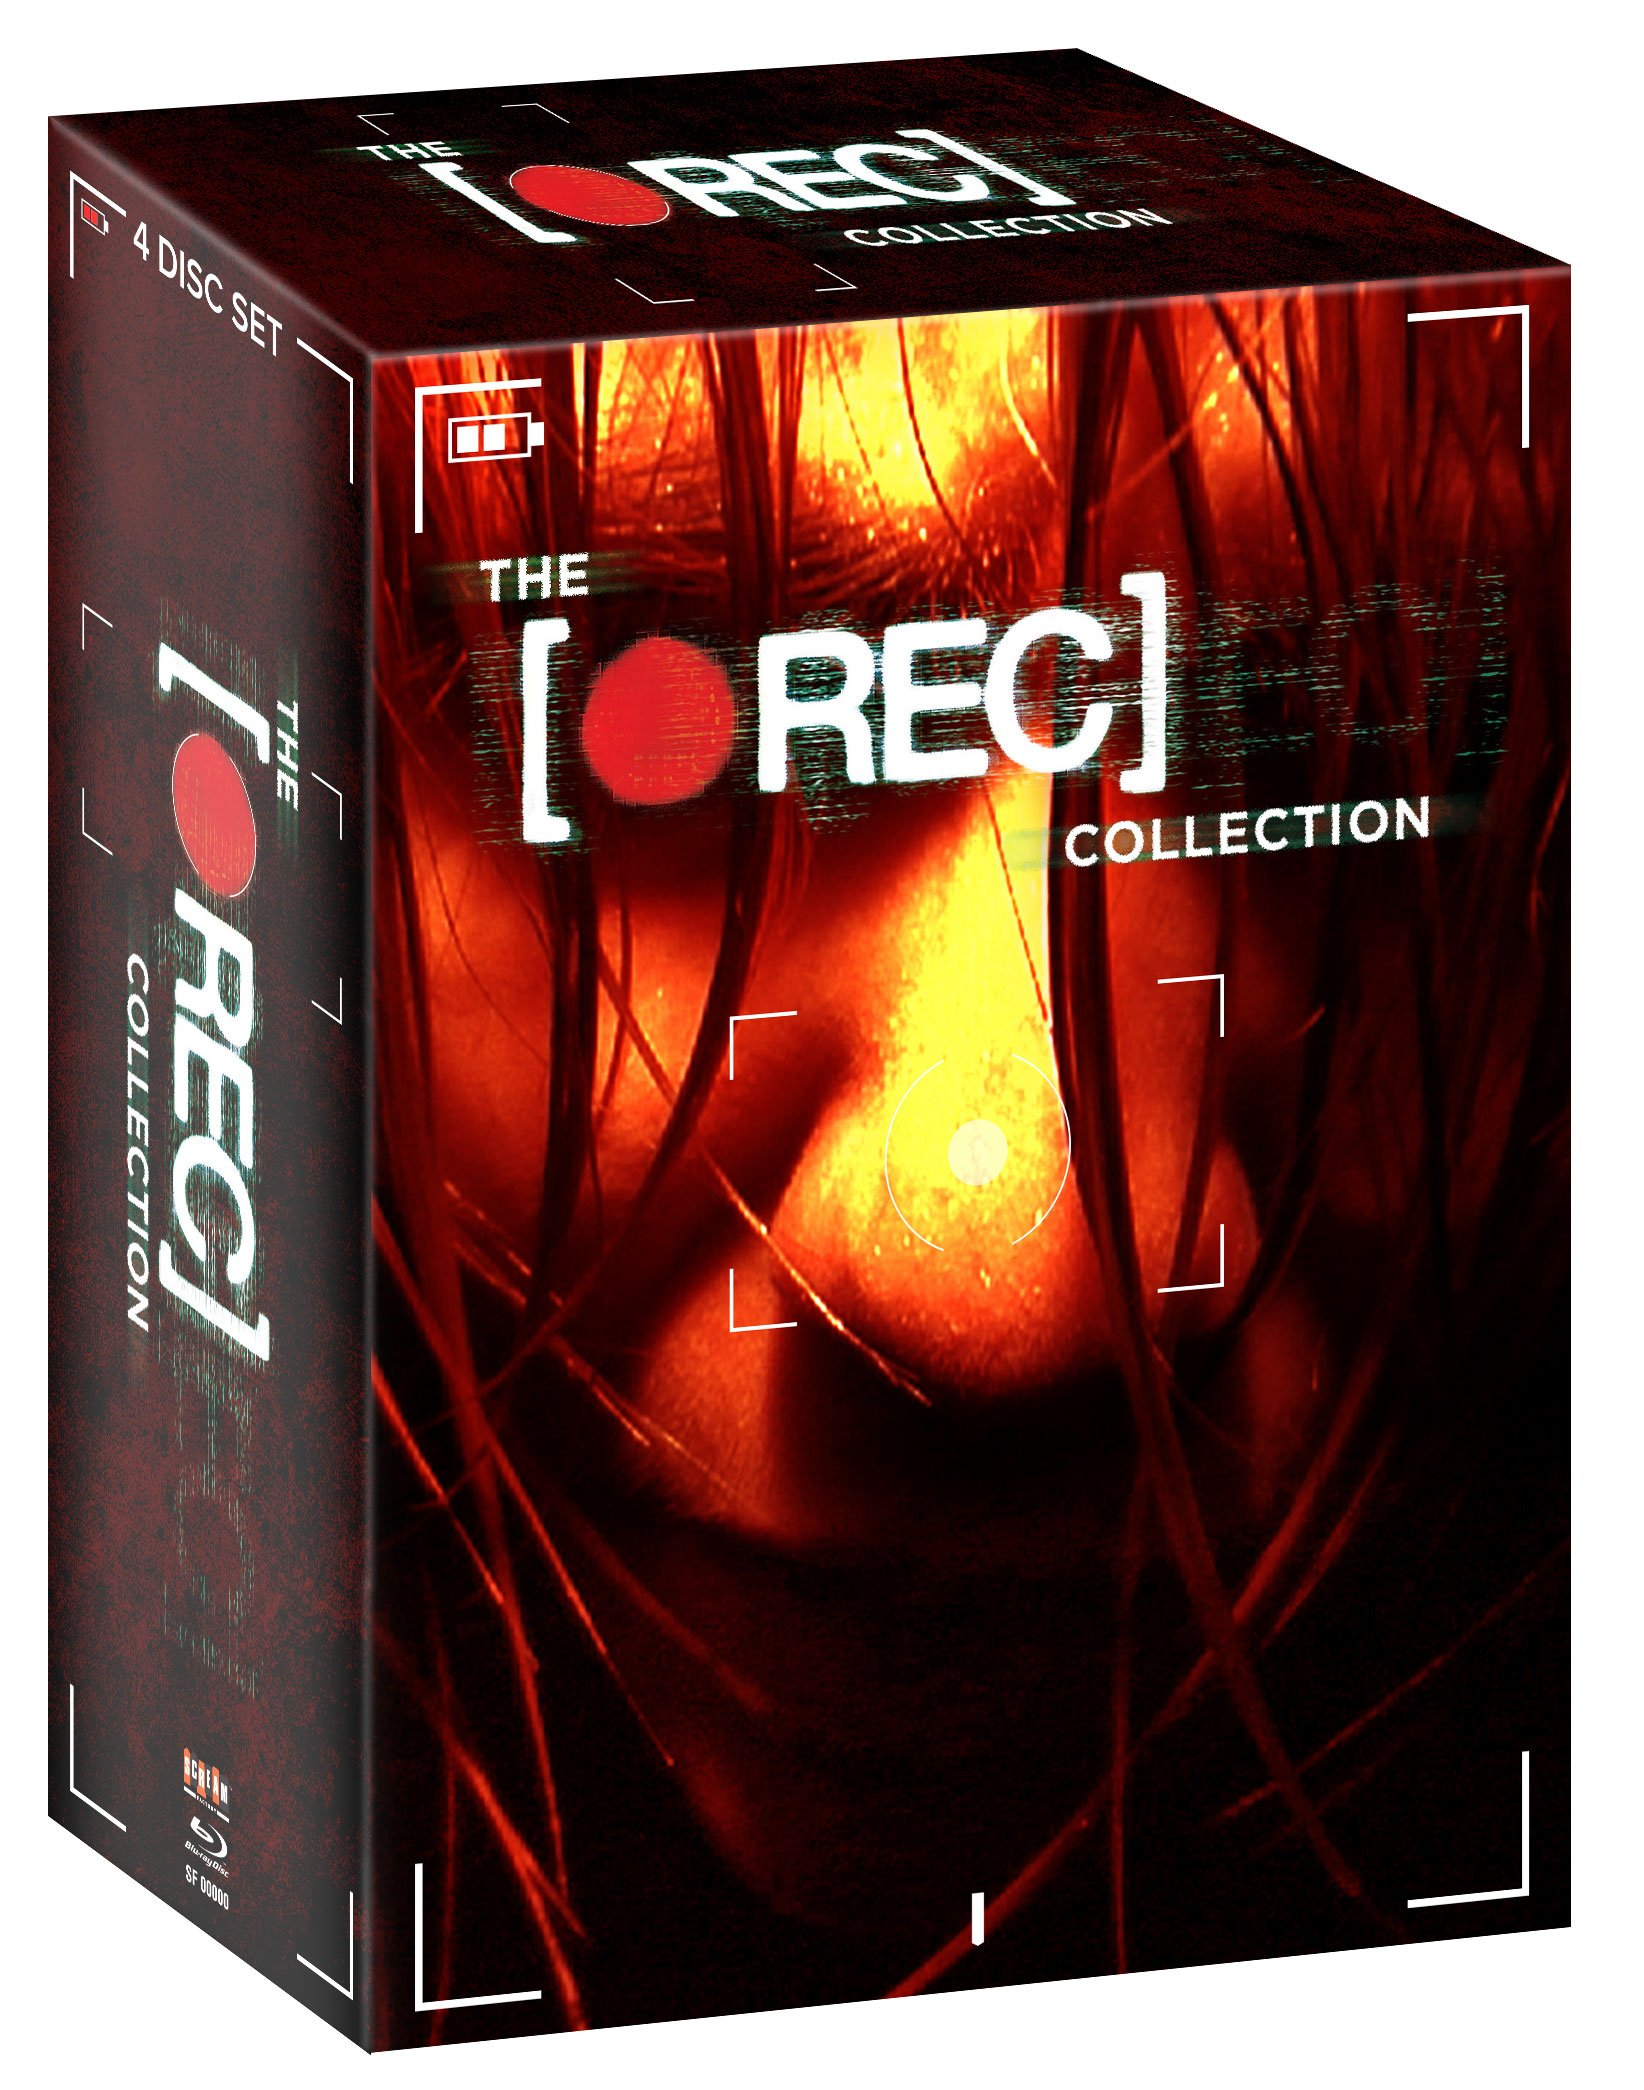 Blu-ray : The [rec] Collection (Boxed Set, Widescreen)